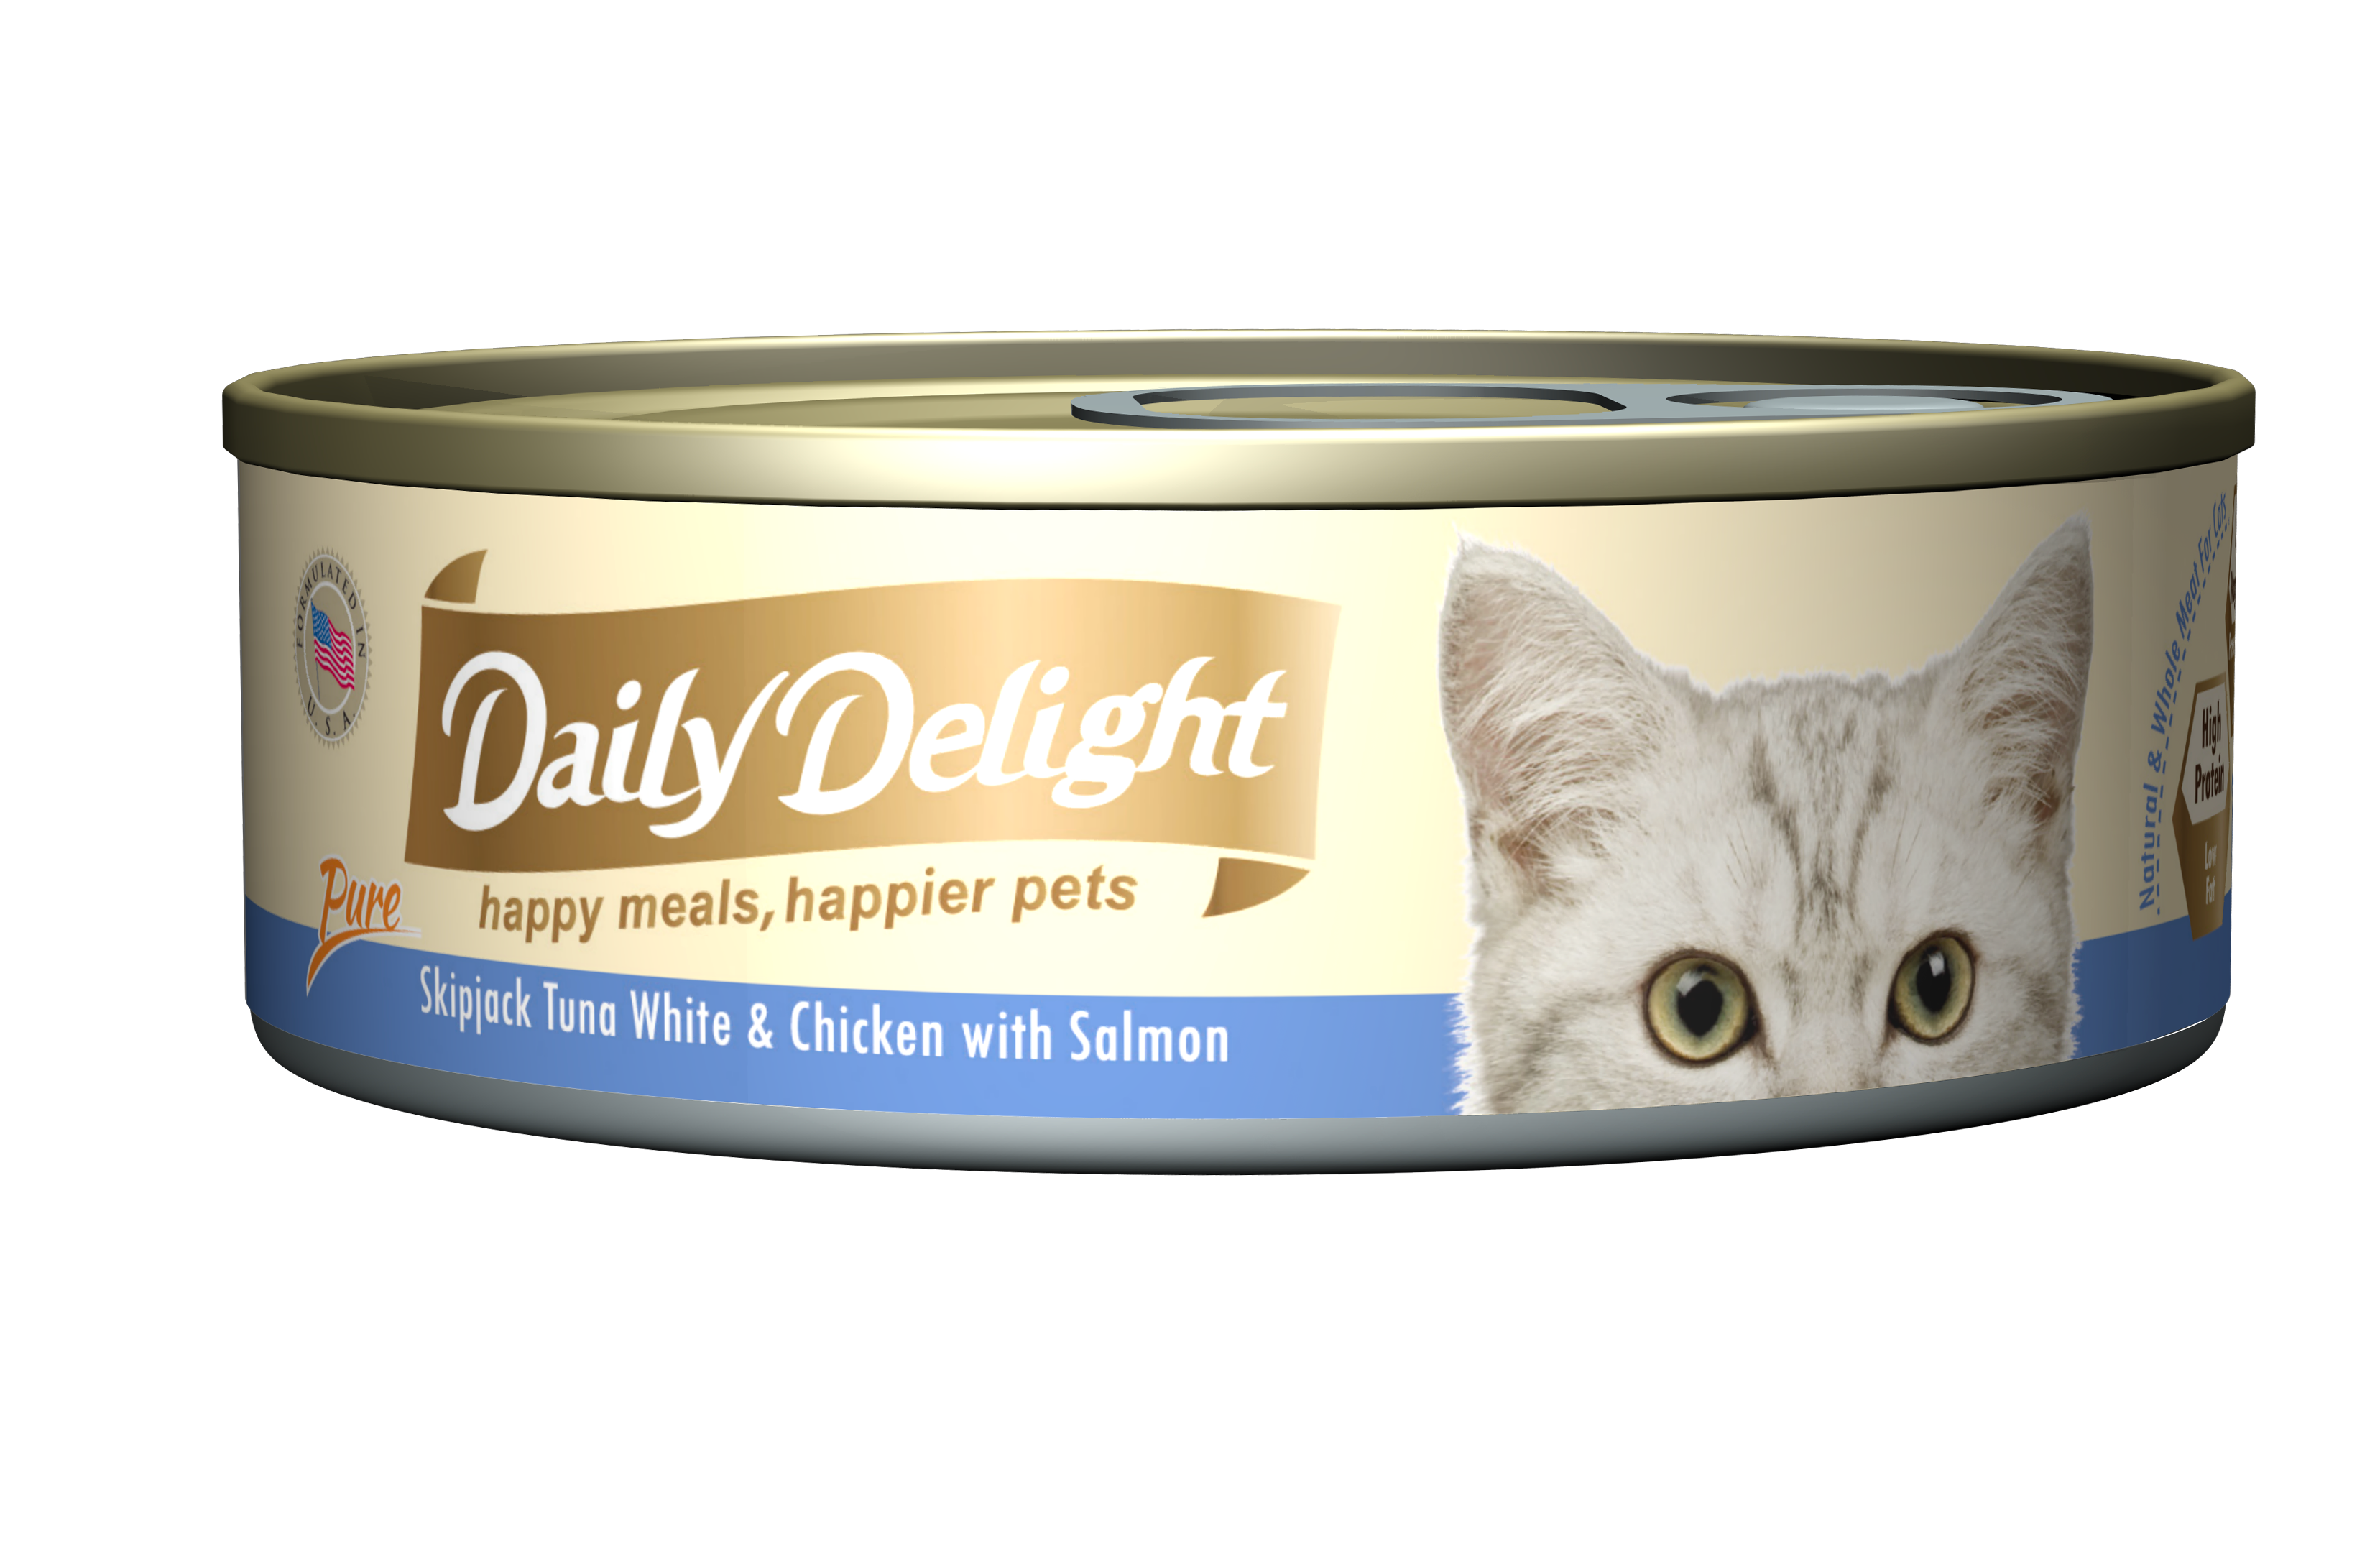 Daily Delight Skipjack Tuna White & Chicken with Salmon